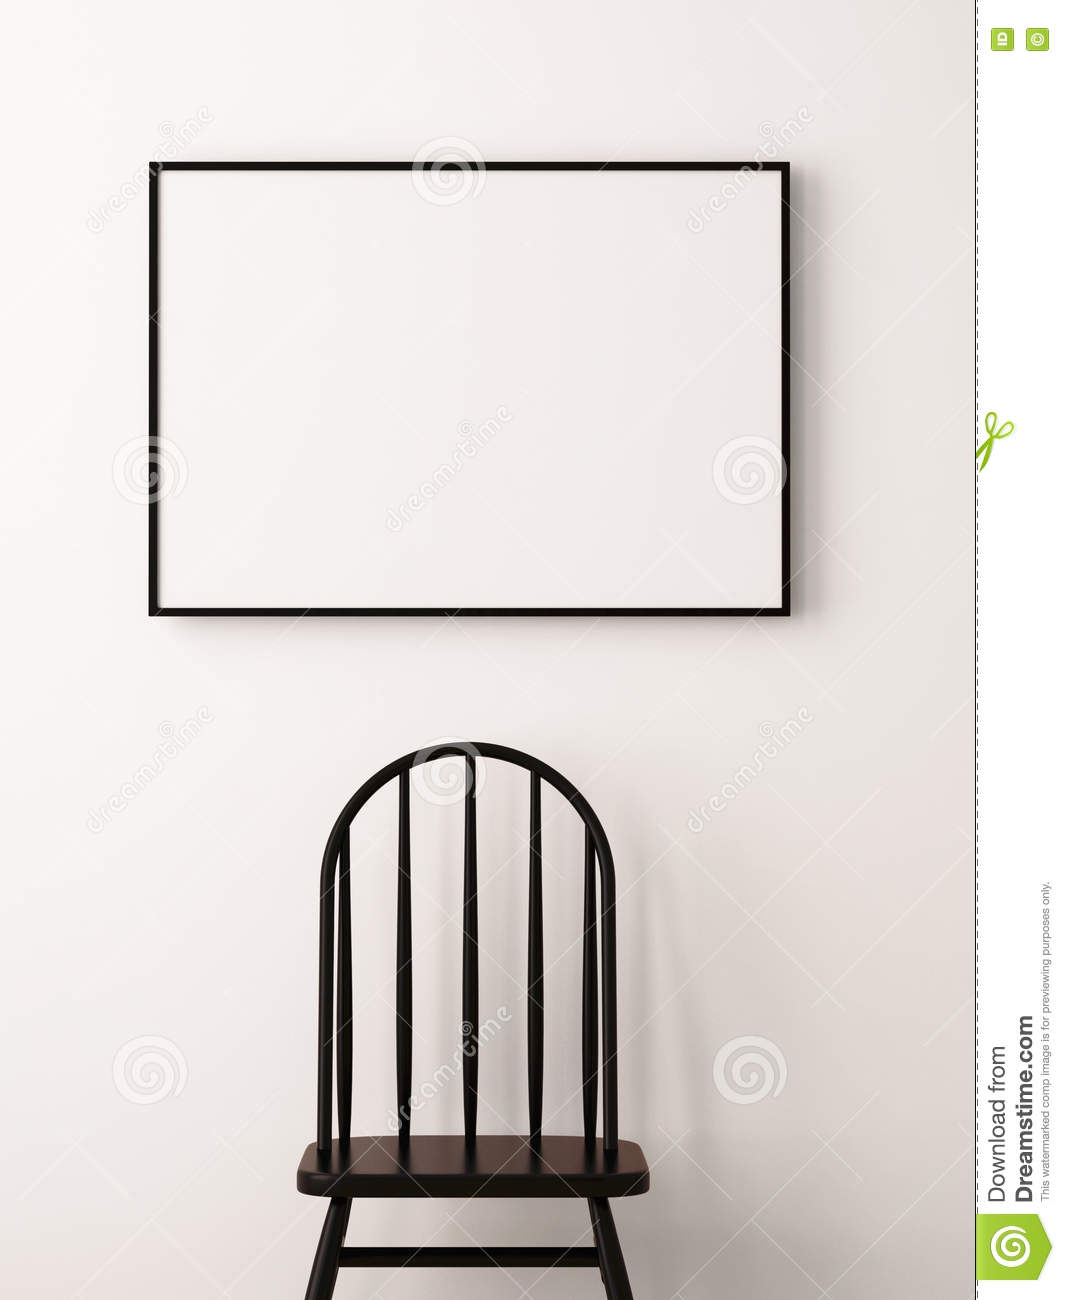 Mockup Posters In The Frame On A Light Background In The Interior ...